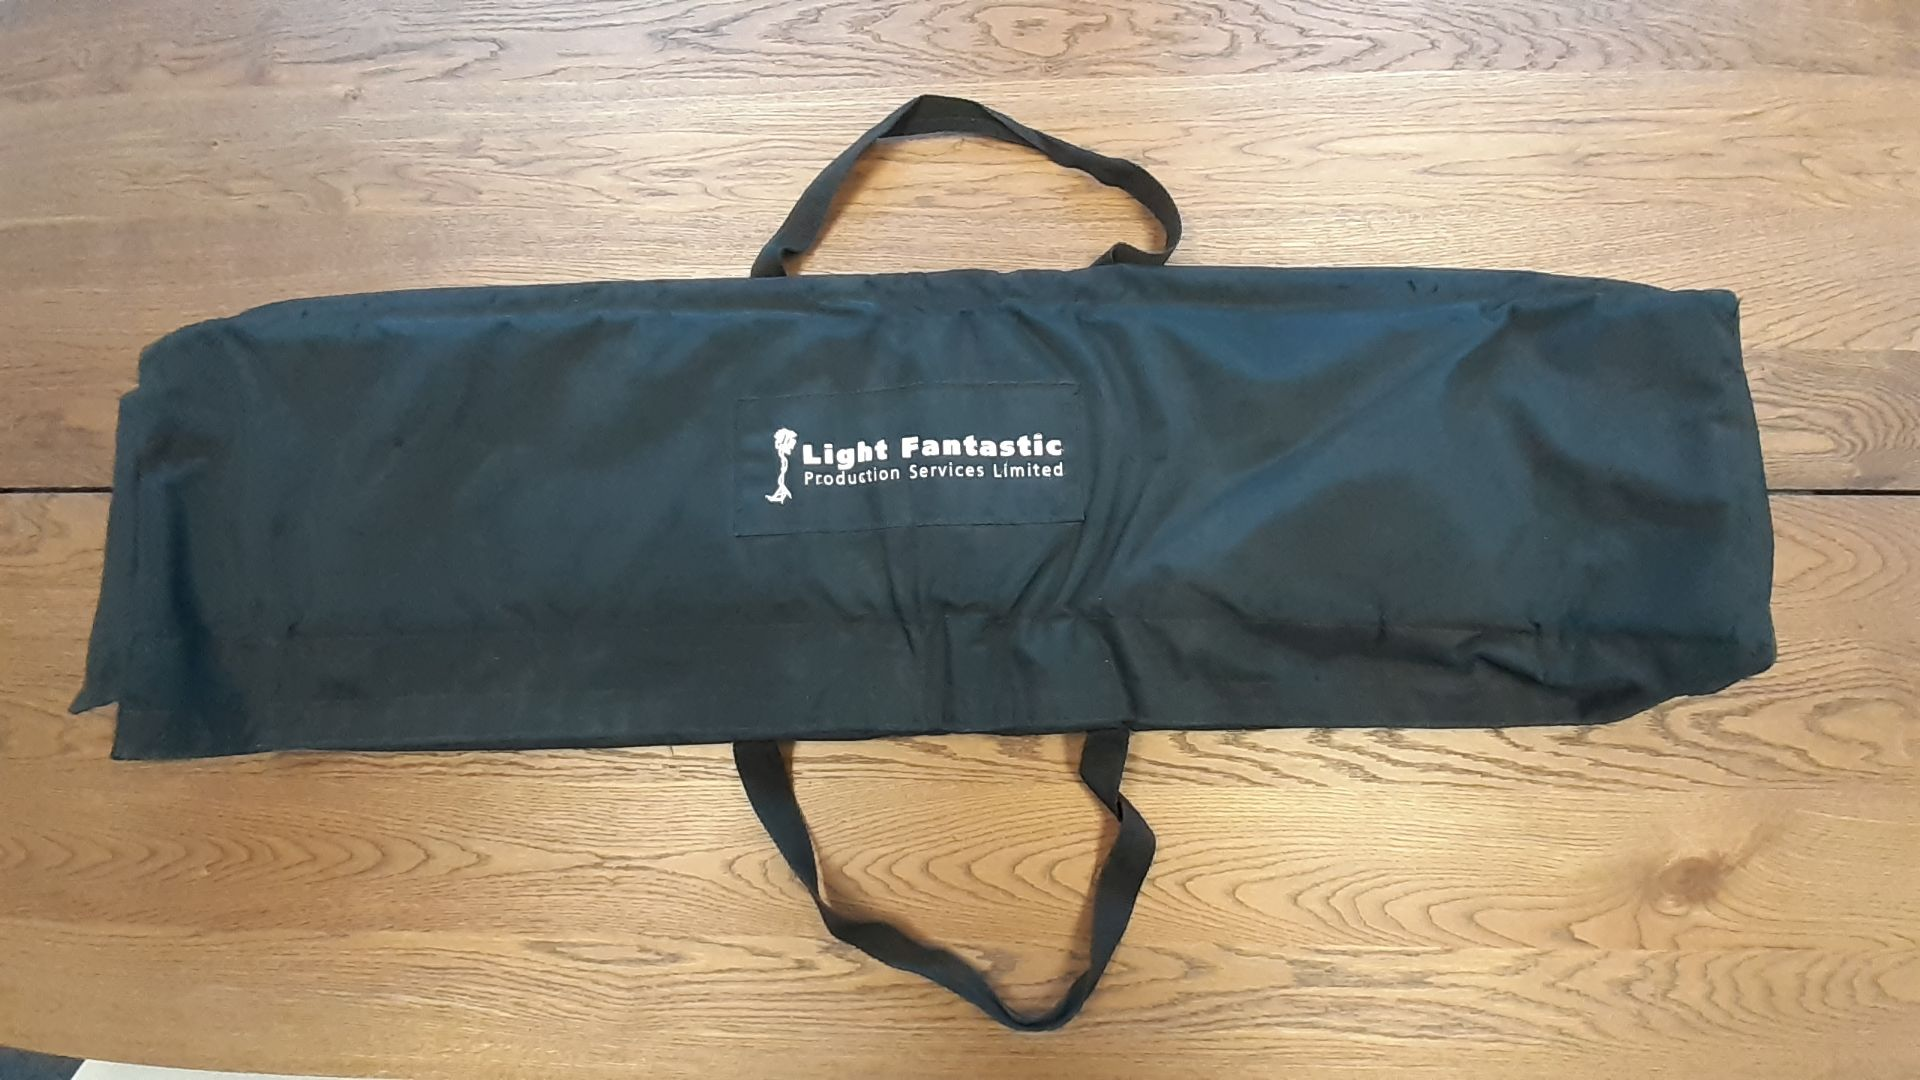 8 x Padded Speaker Stand Bags with velcro closures, branded 'Light Fantastic Production Services',